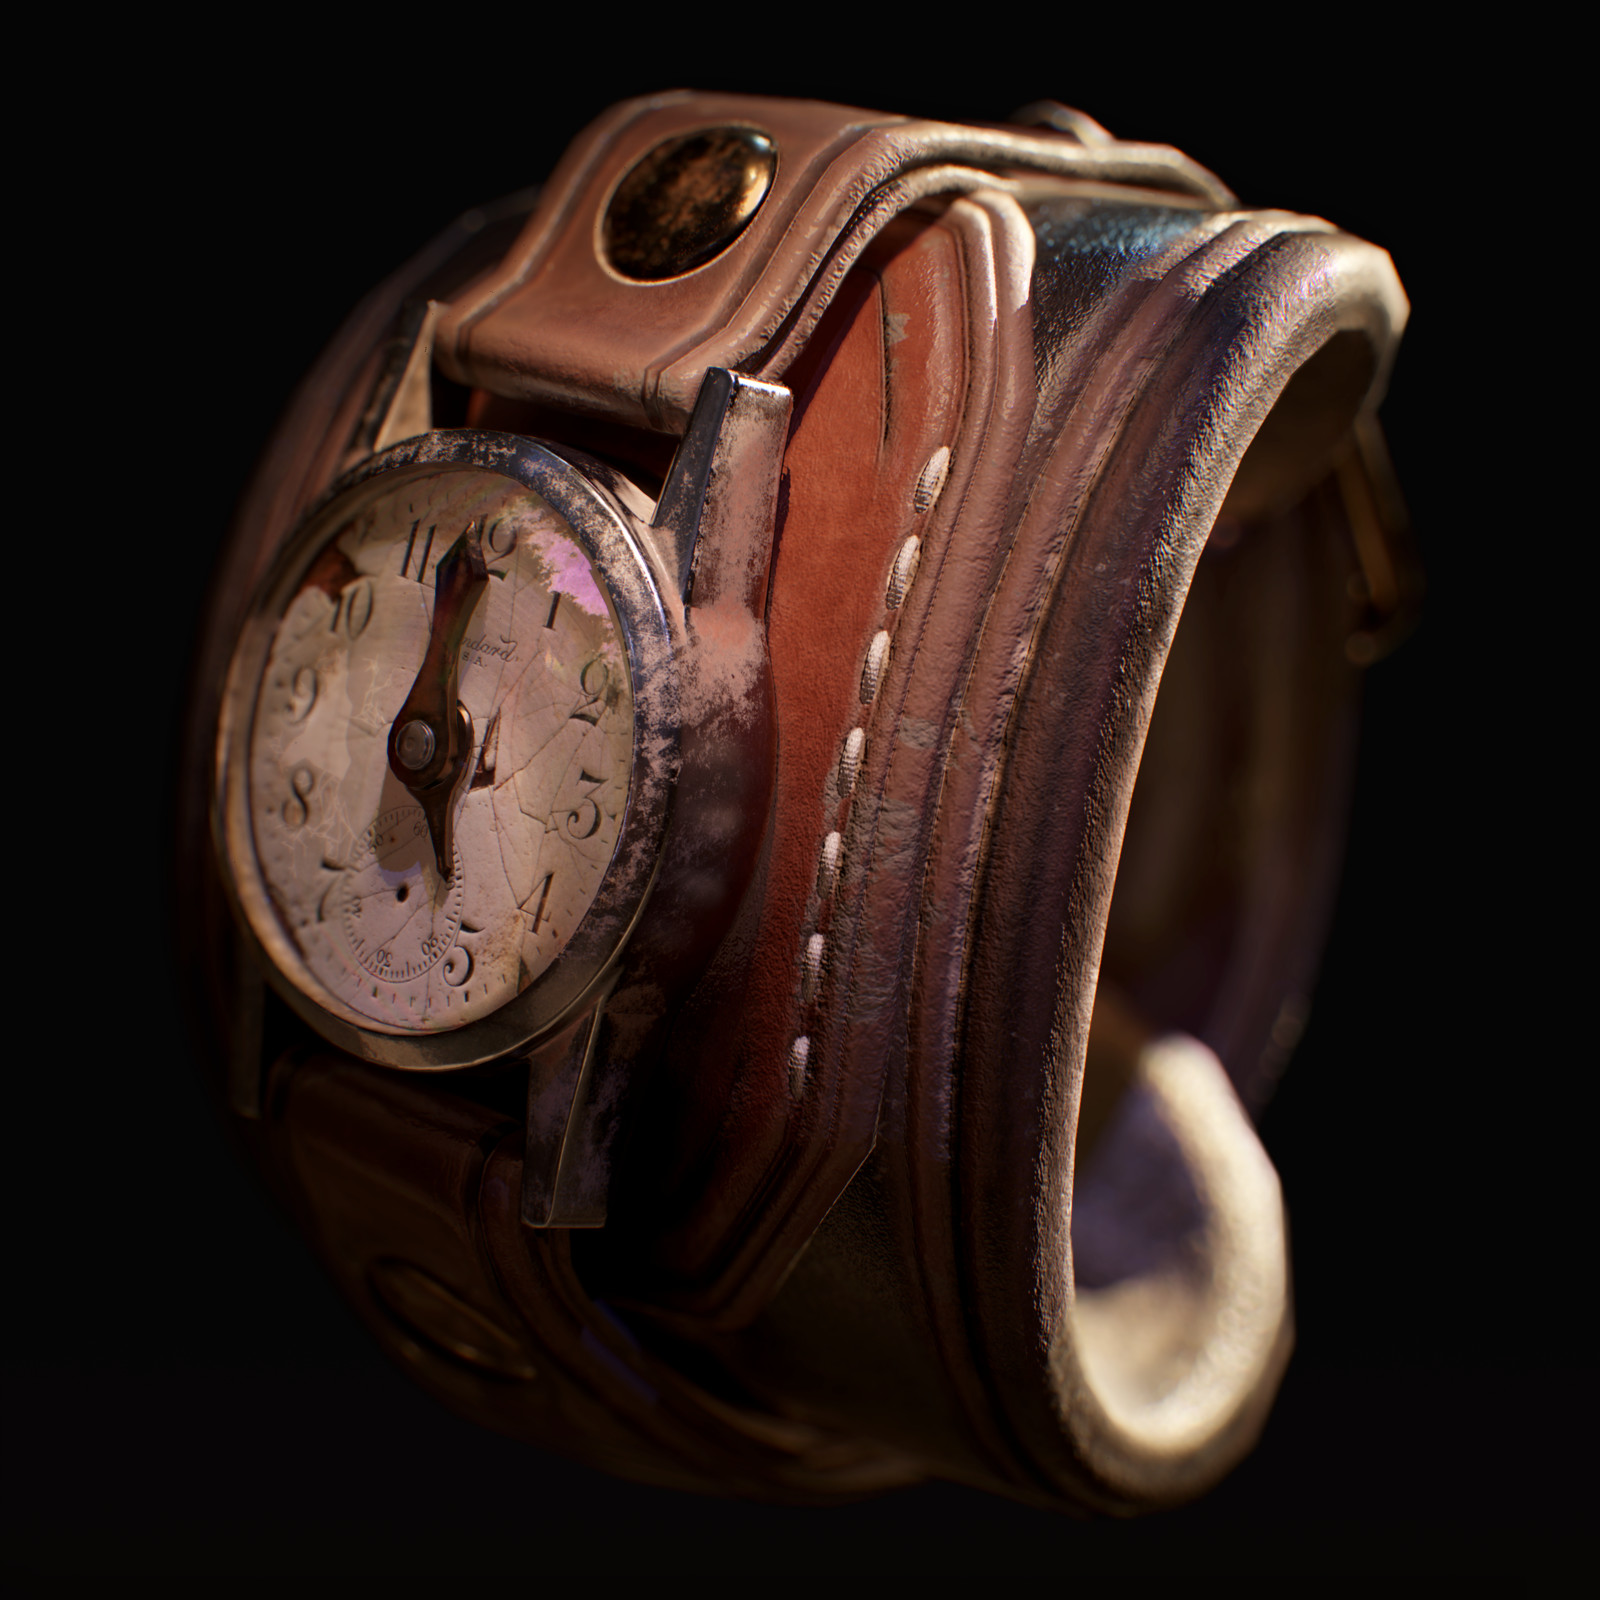 Broken Steampunk Watch